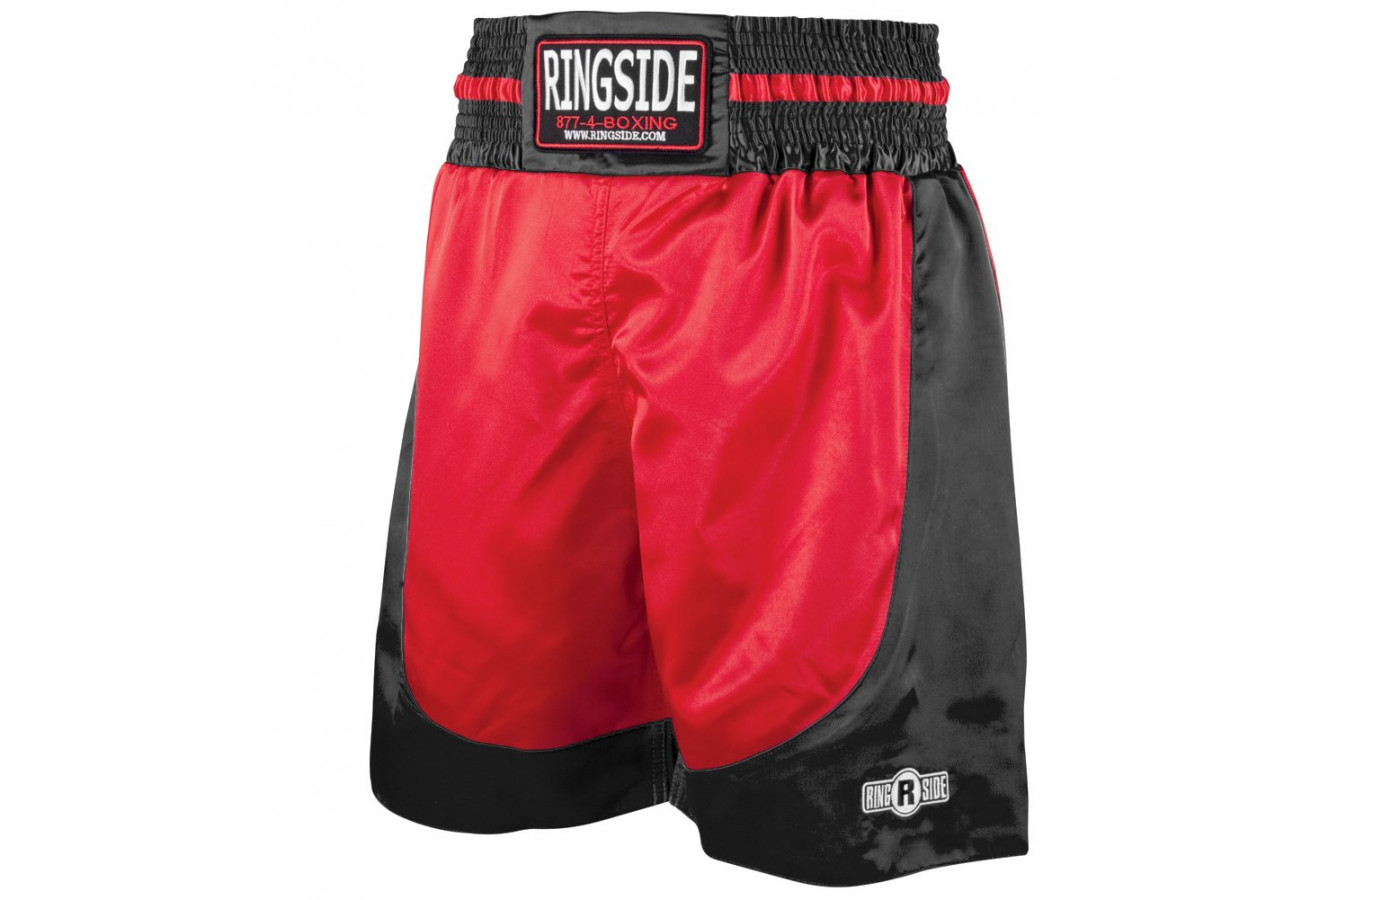 ringside trunks red and black